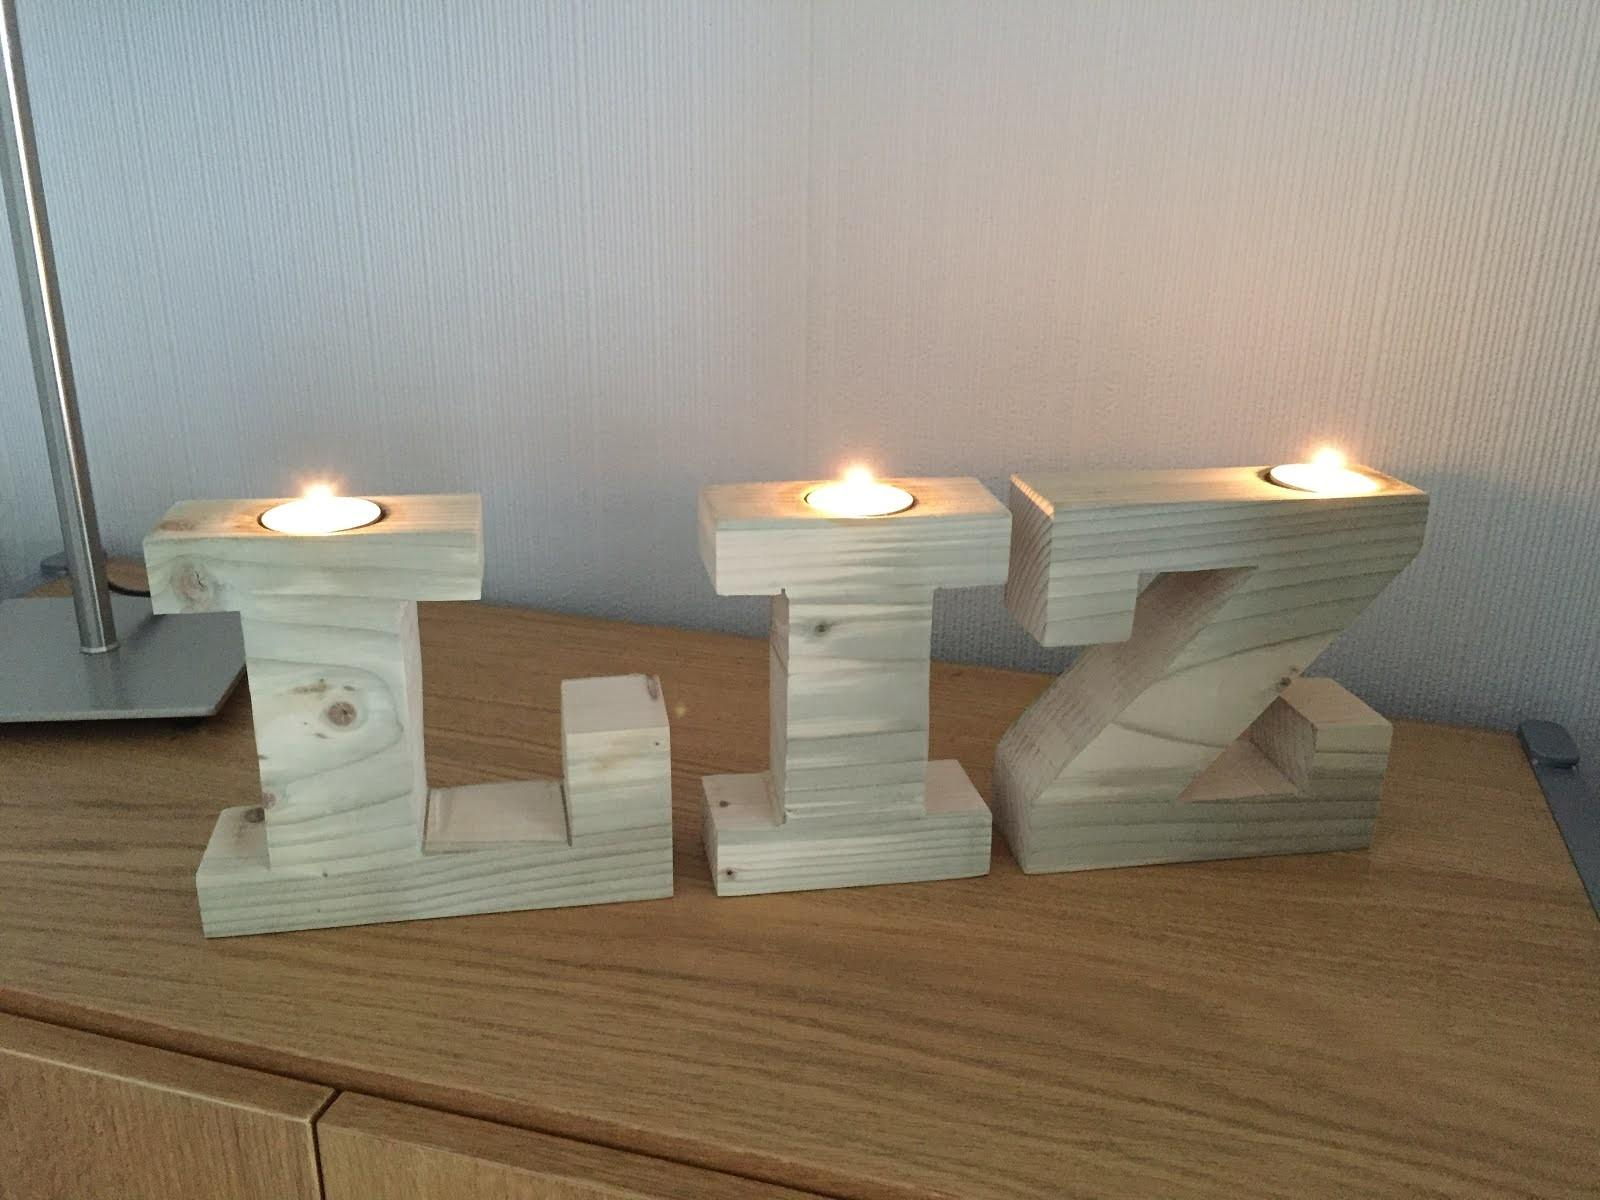 Diy Projects Stuff Tea Light Candle Letter Holders